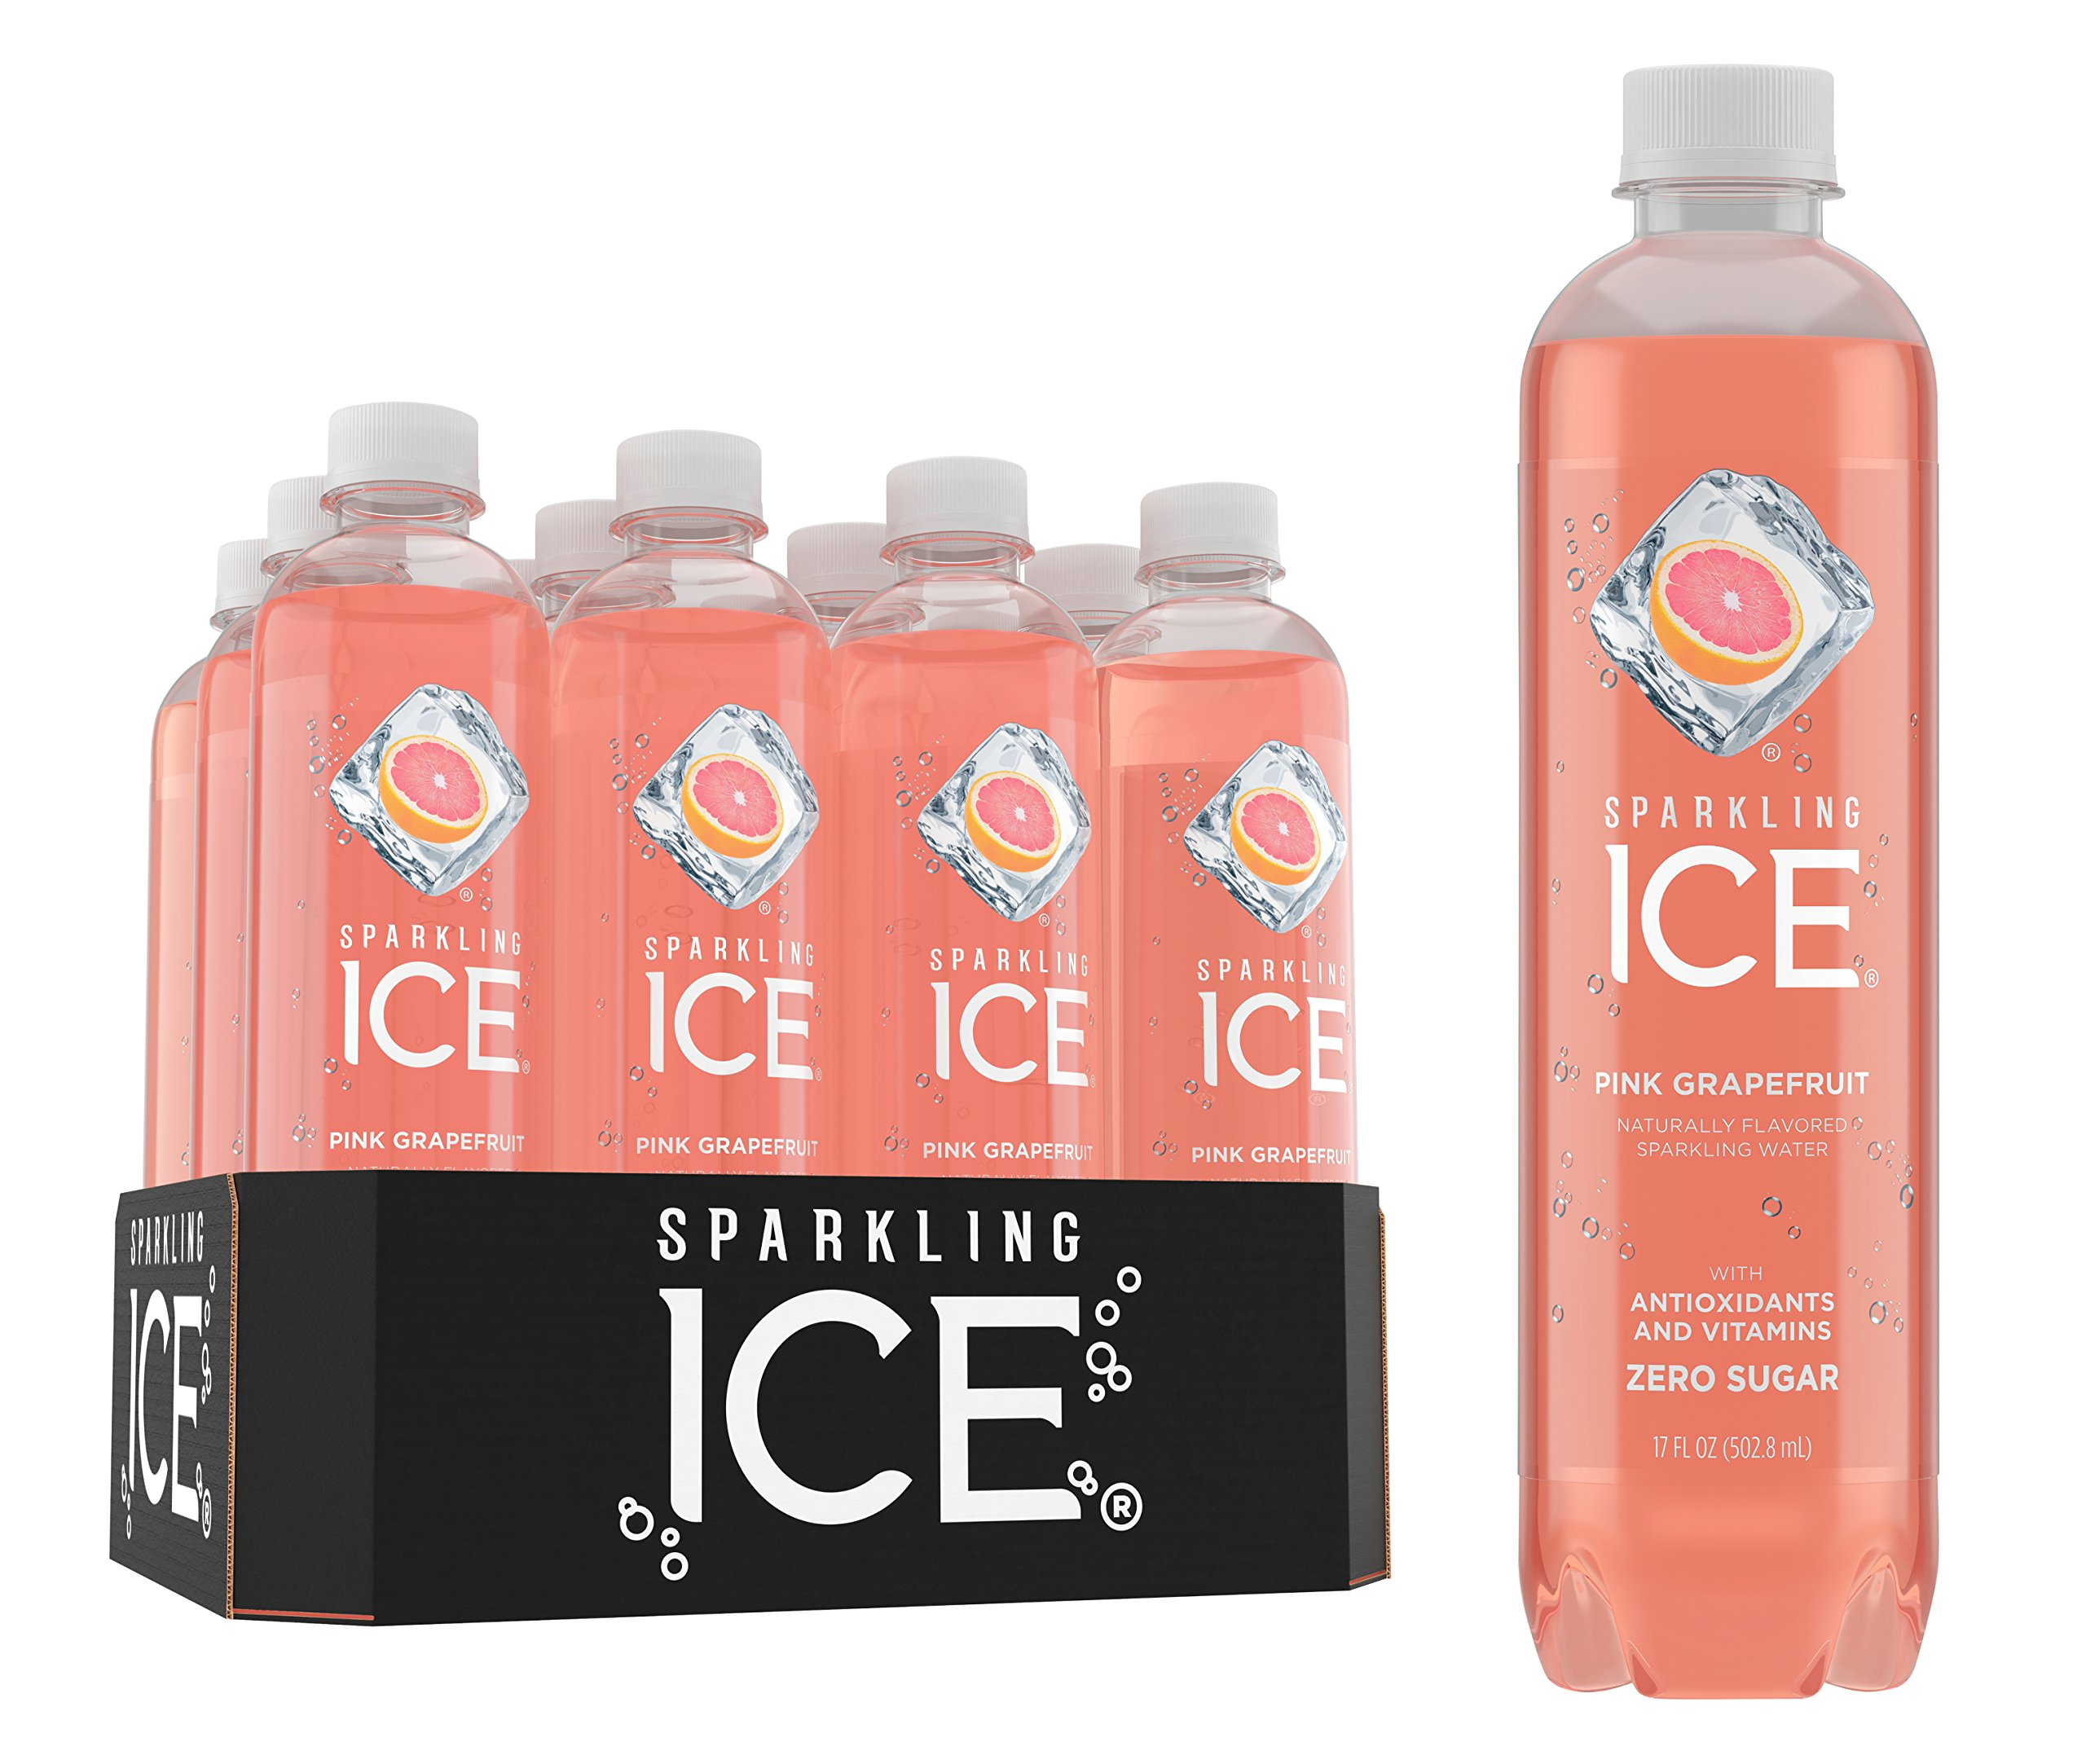 Sparkling Ice Pink Grapefruit Sparkling Water, with Antioxidants and Vitamins, Zero Sugar, 17 Ounce Bottles (Pack of 12)